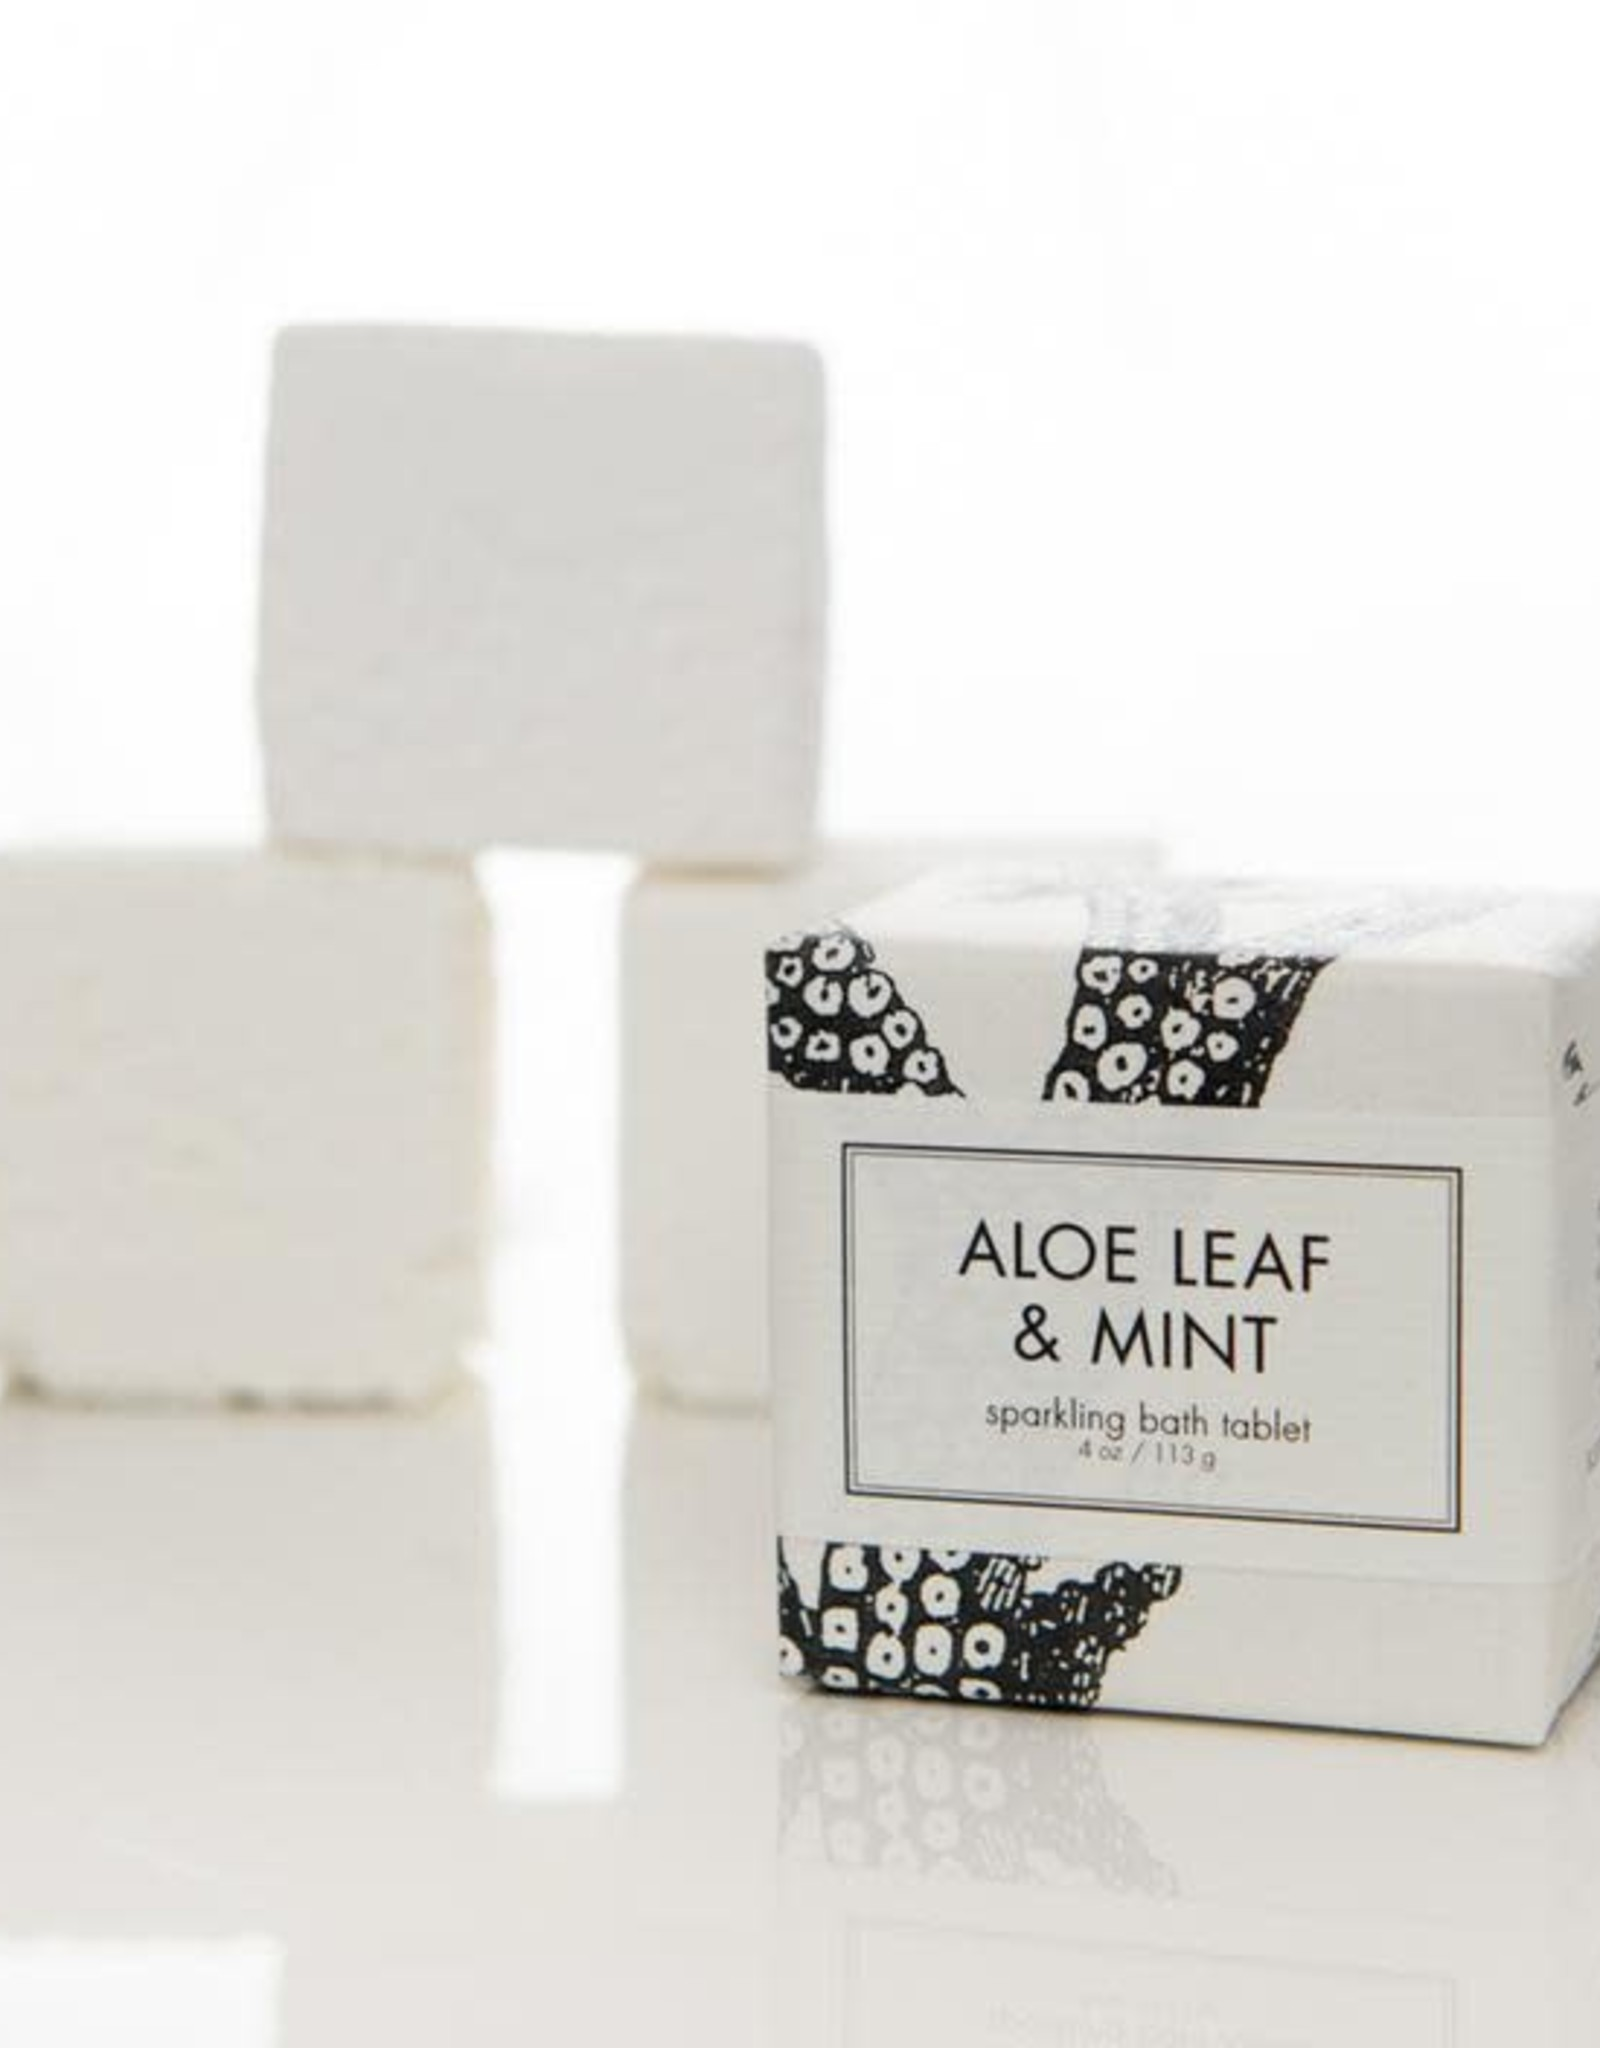 F-55 Aloe Leaf & Mint Bath Tablet